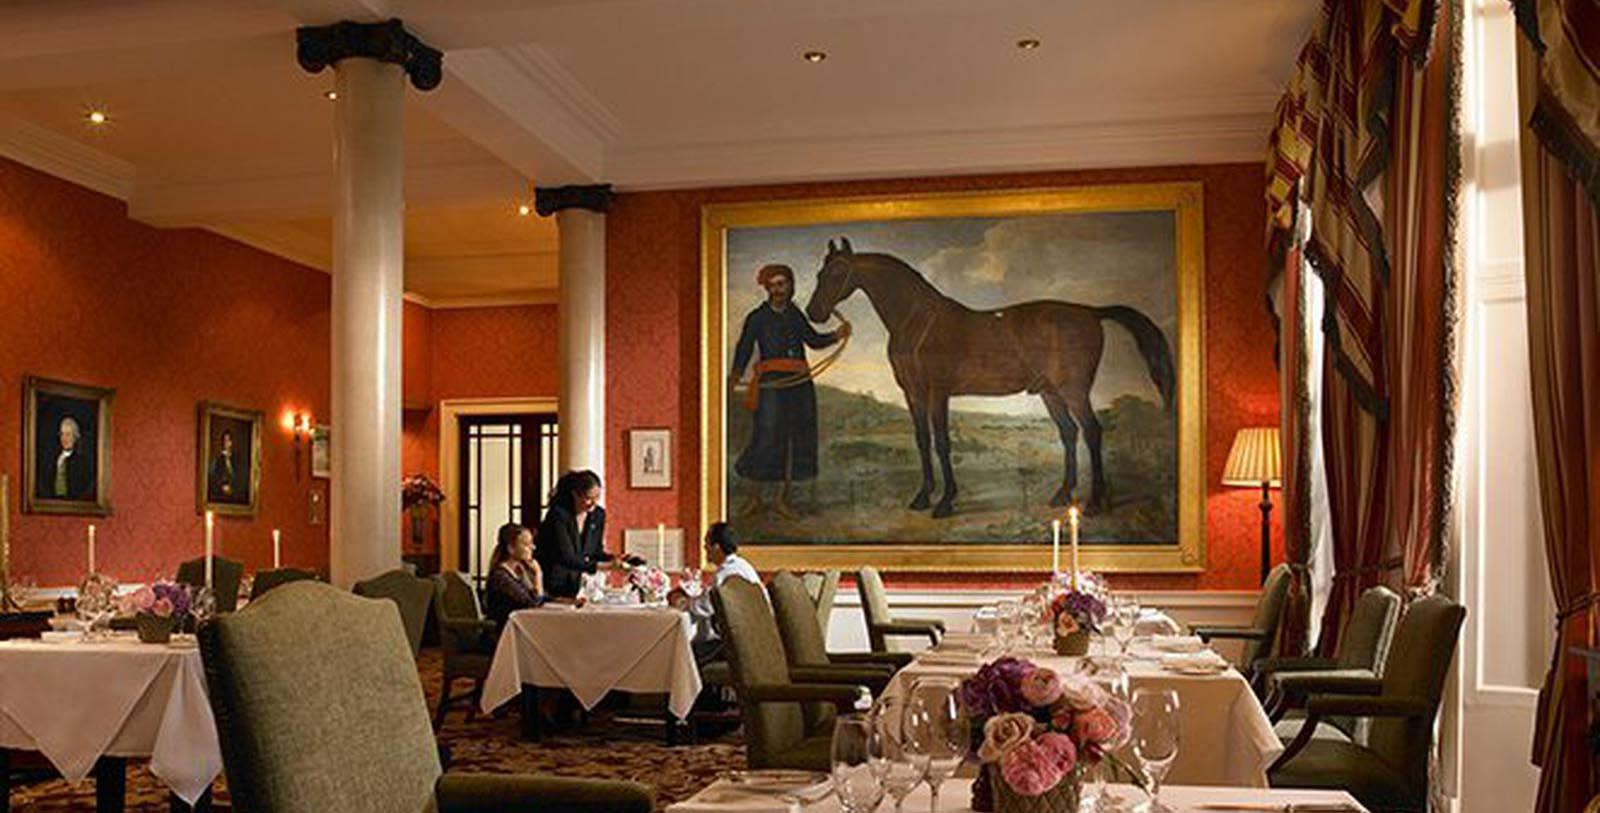 Image of Dining Room at the Byerley Turk Restaurant at The K Club, 550, Member of Historic Hotels Worldwide, in Straffan, County Kildare, Ireland, Taste